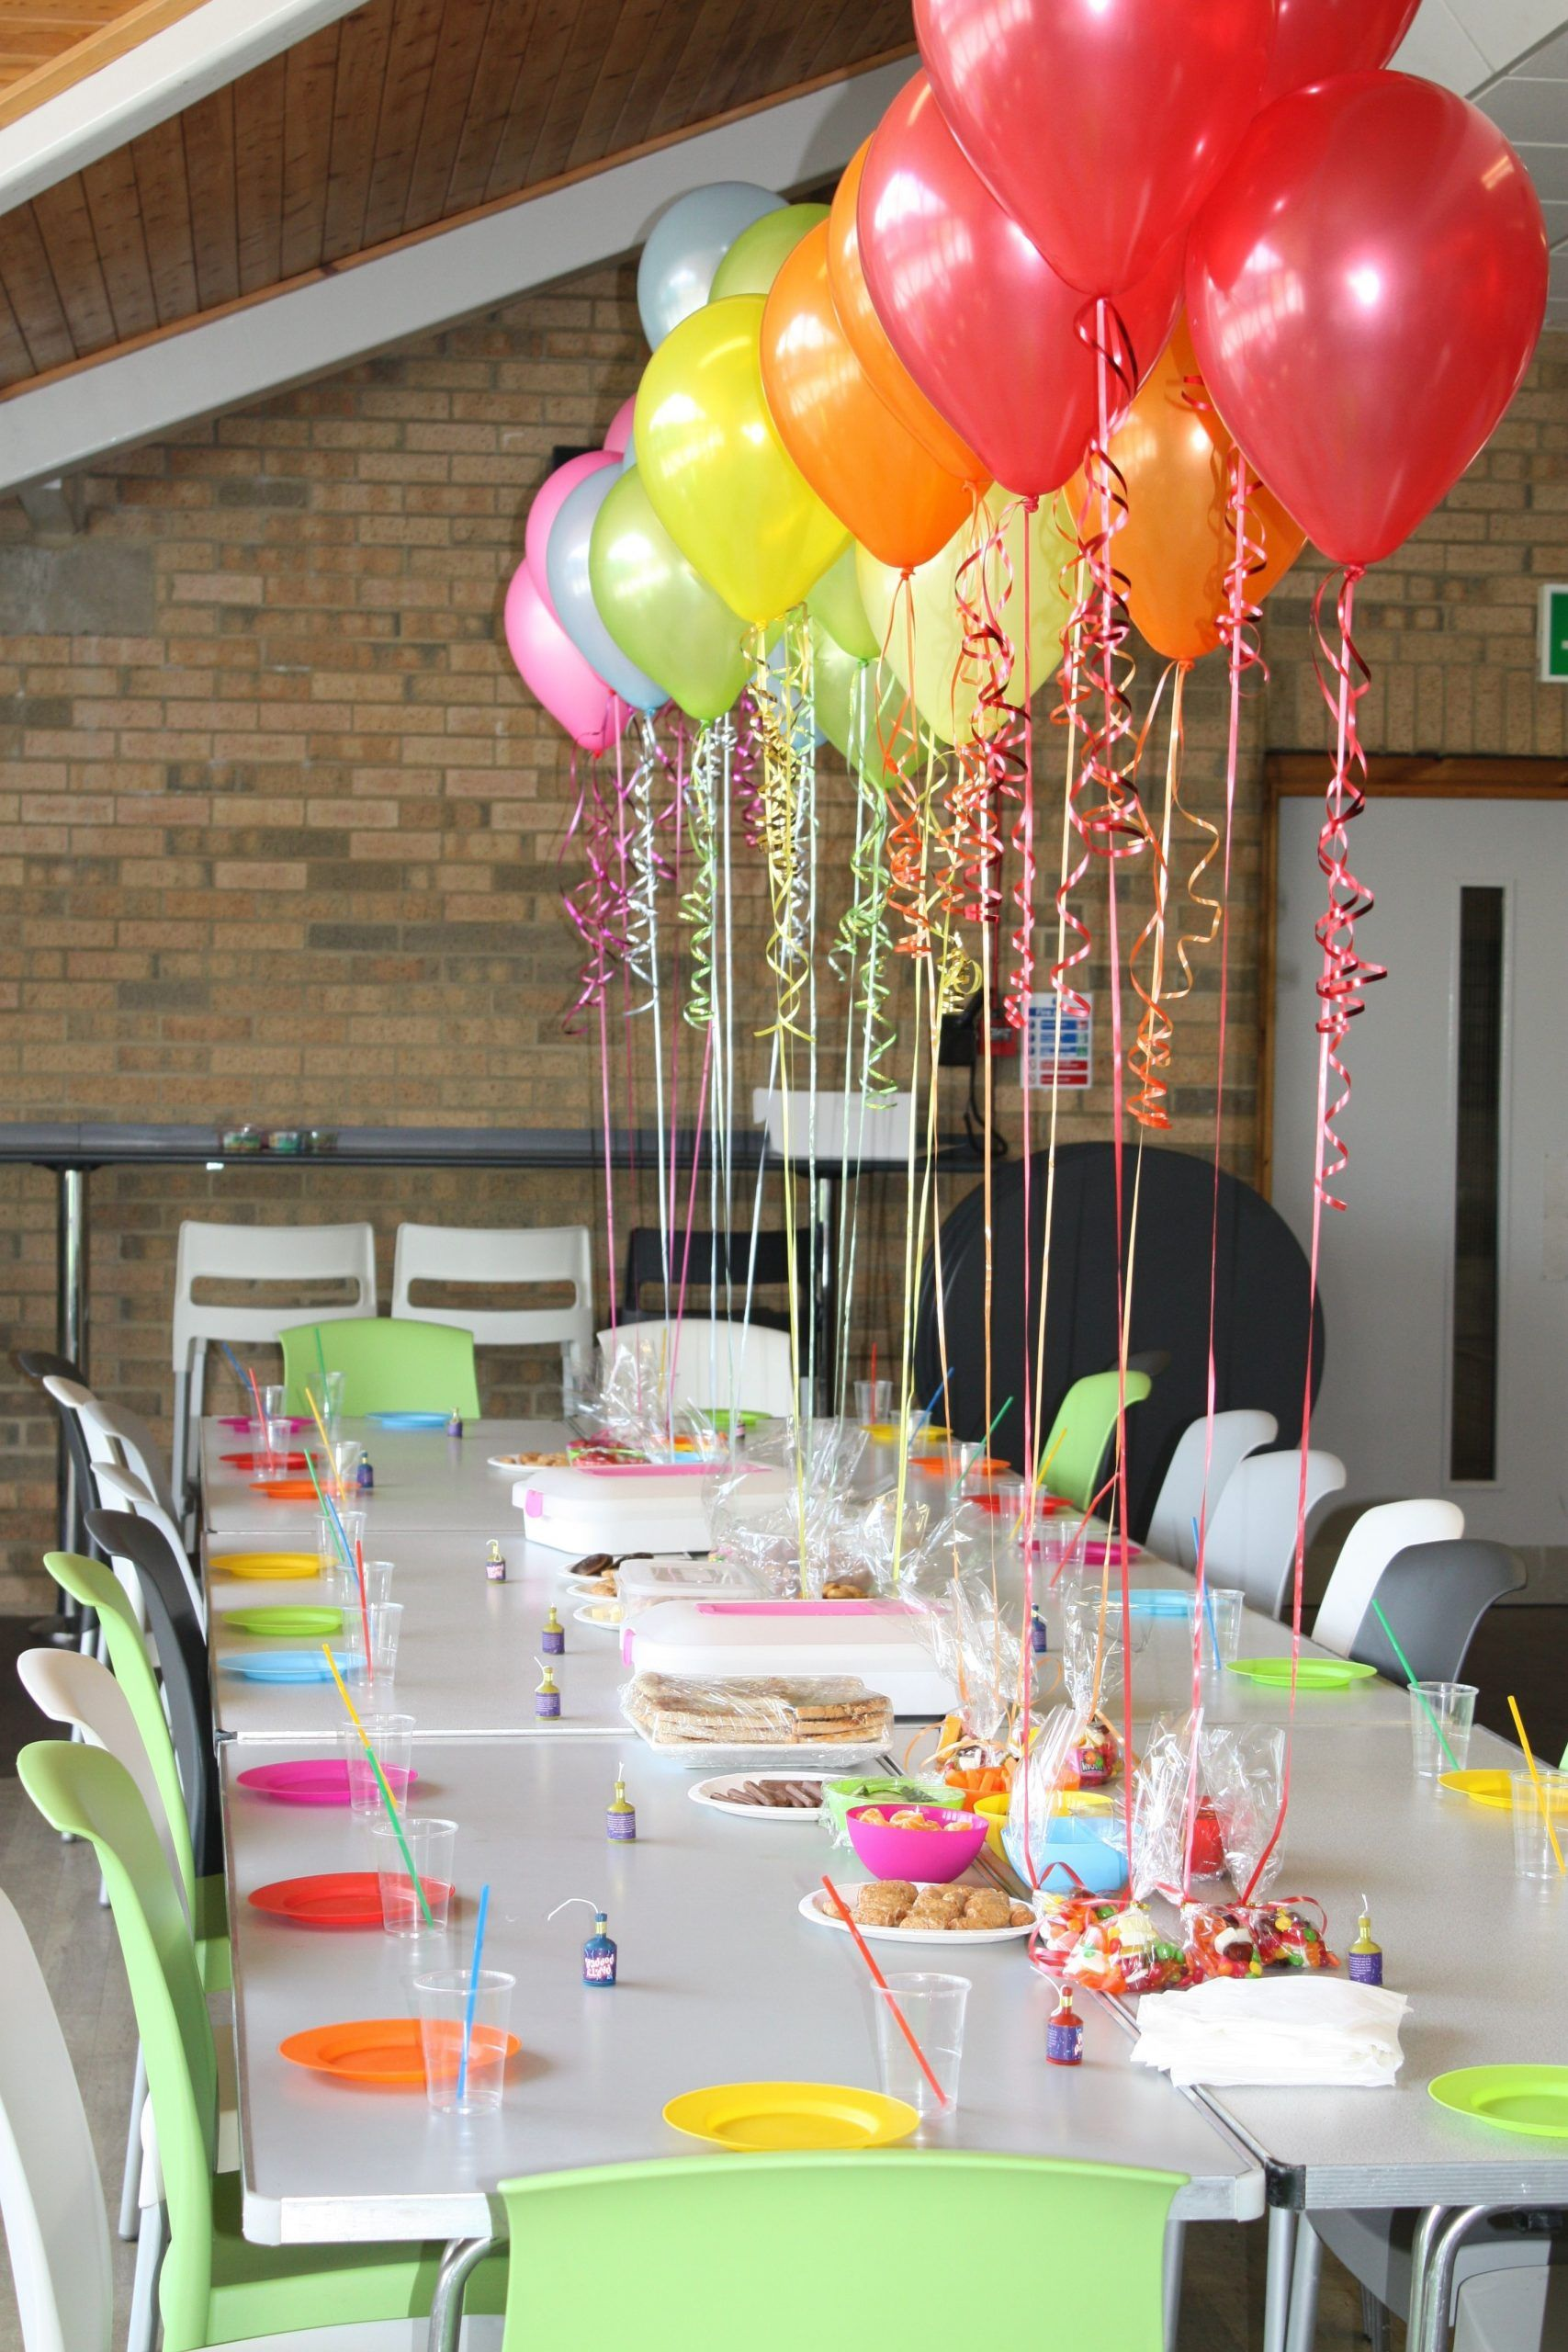 Birthday Table Decoration At Home For Party Birthday Ideas Make It Balloon Decorations Party Birthday Balloon Decorations Birthday Table Decorations